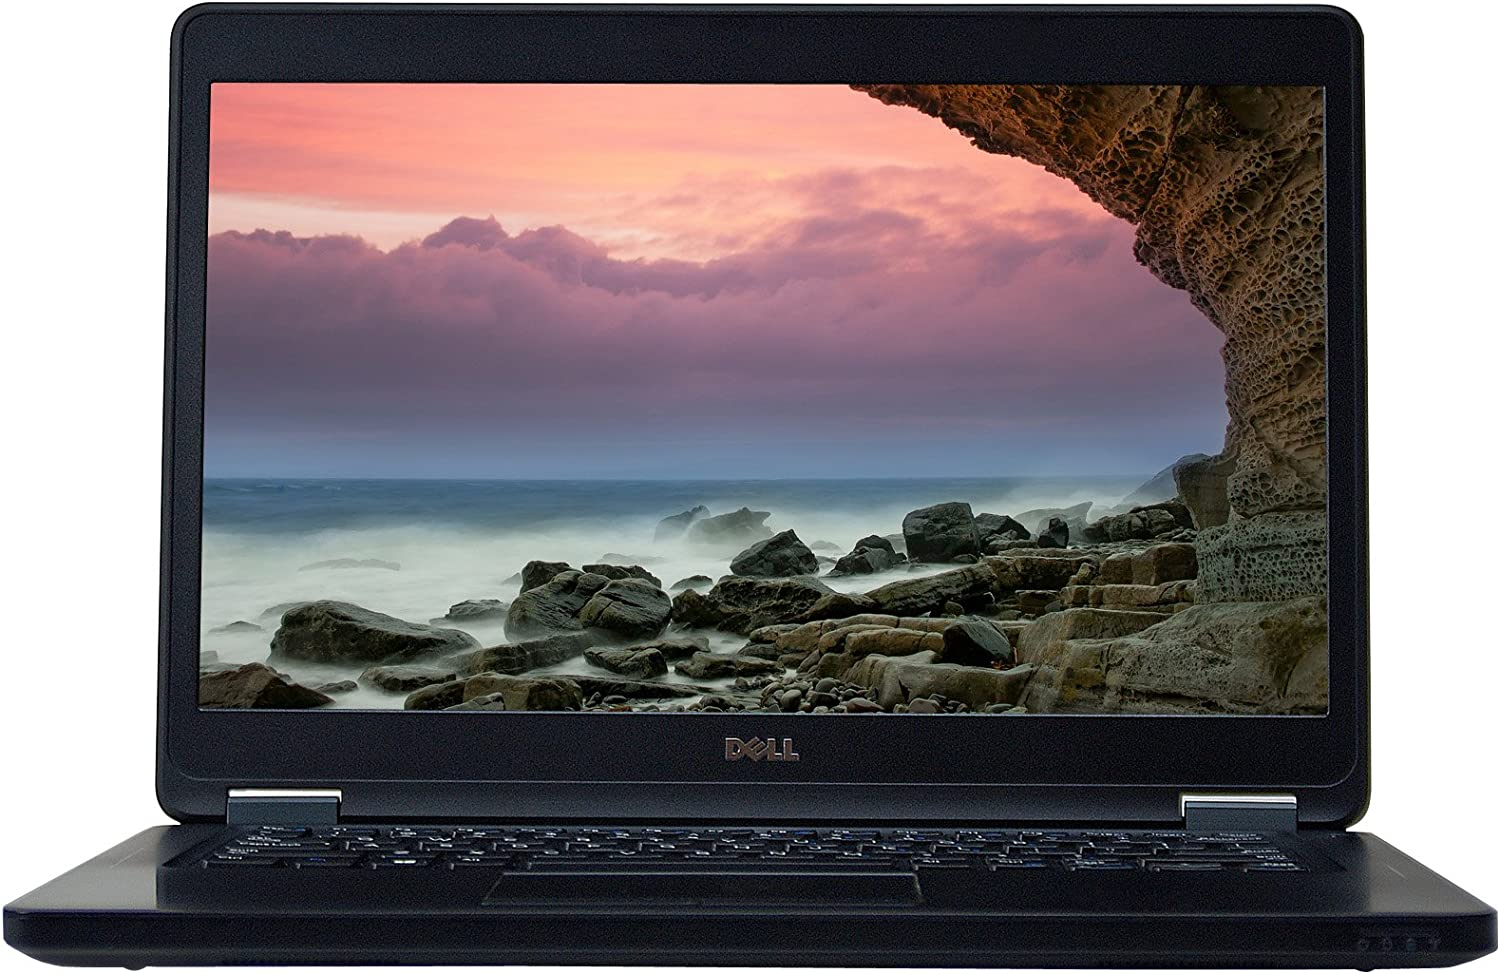 Dell Latitude E5450 14in Laptop, Core i7-5600U 2.6GHz, 8GB Ram, 240GB SSD, Windows 10 Pro 64bit (Renewed)